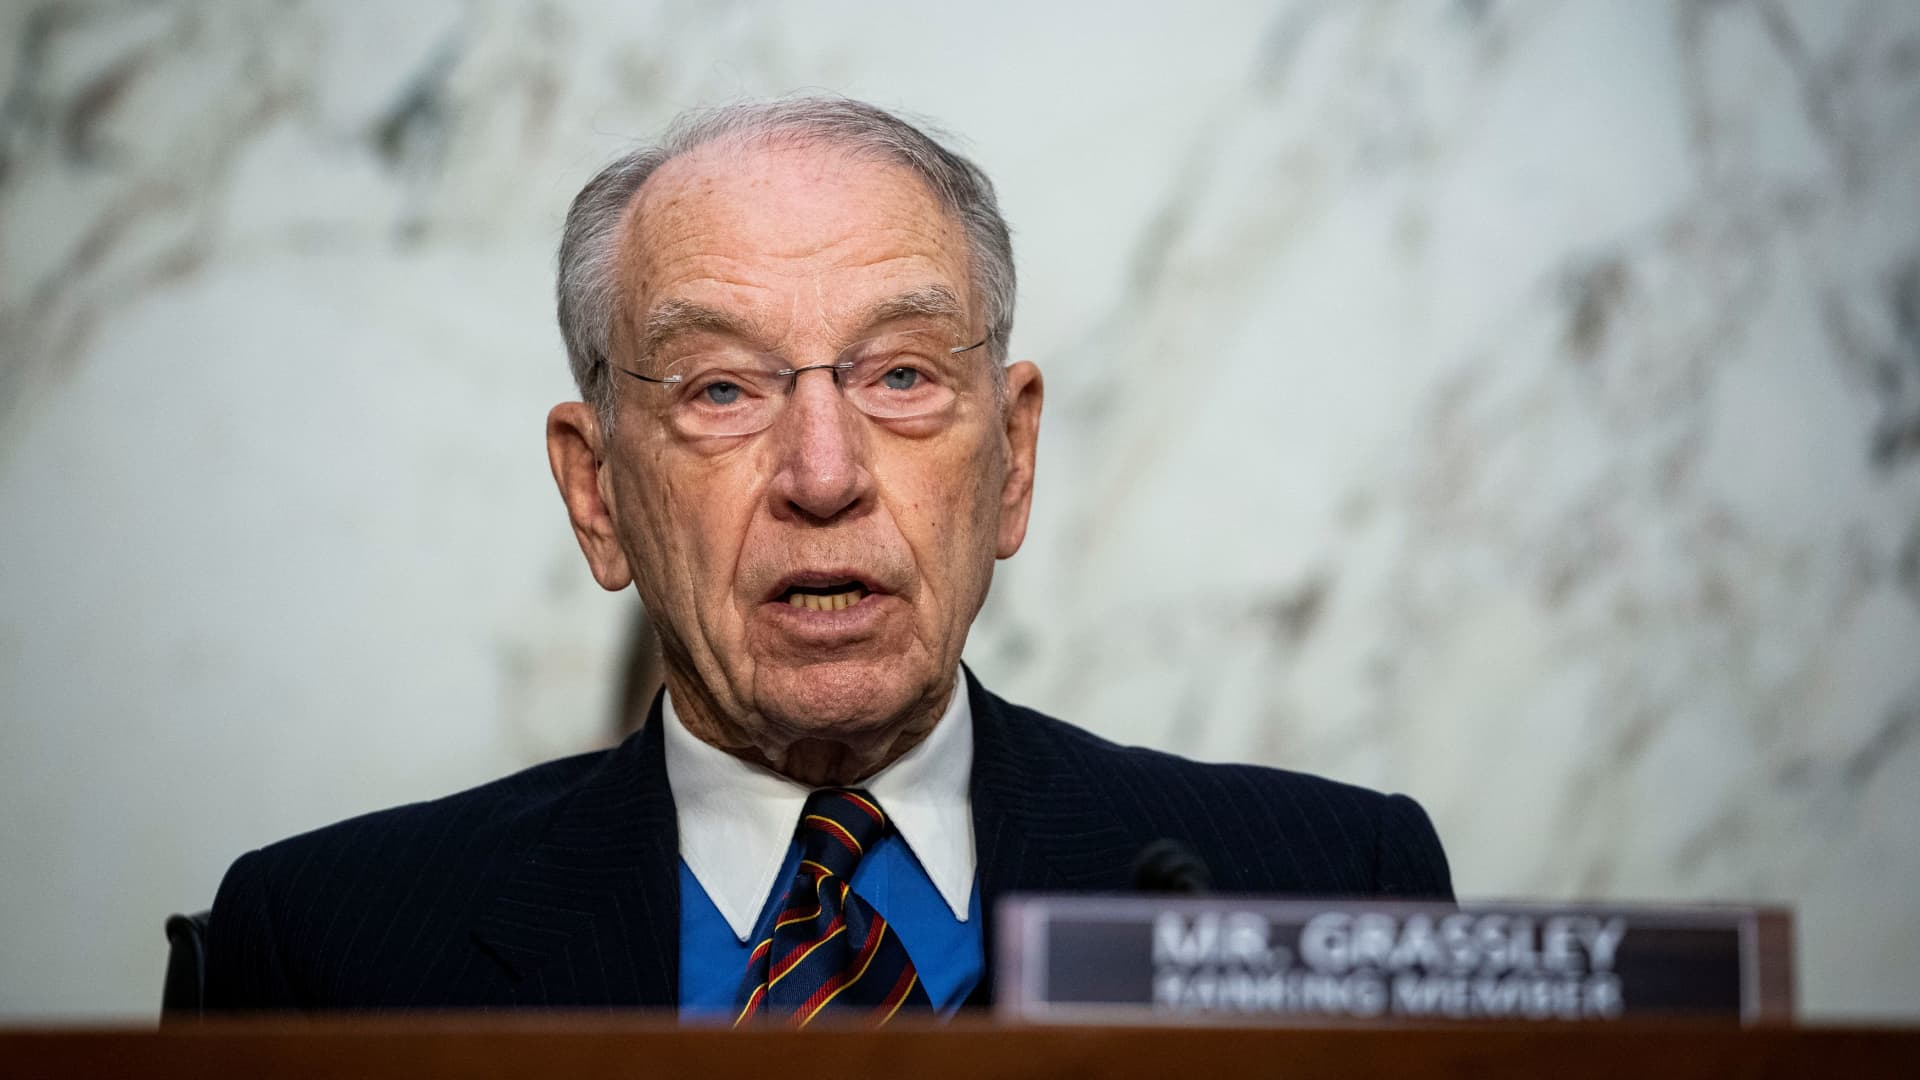 Ranking member Sen. Chuck Grassley (R-IA) speaks during Attorney General nominee Merrick Garland's confirmation hearing before the Senate Judiciary Committee, Washington, DC, U.S., February 22, 2021.